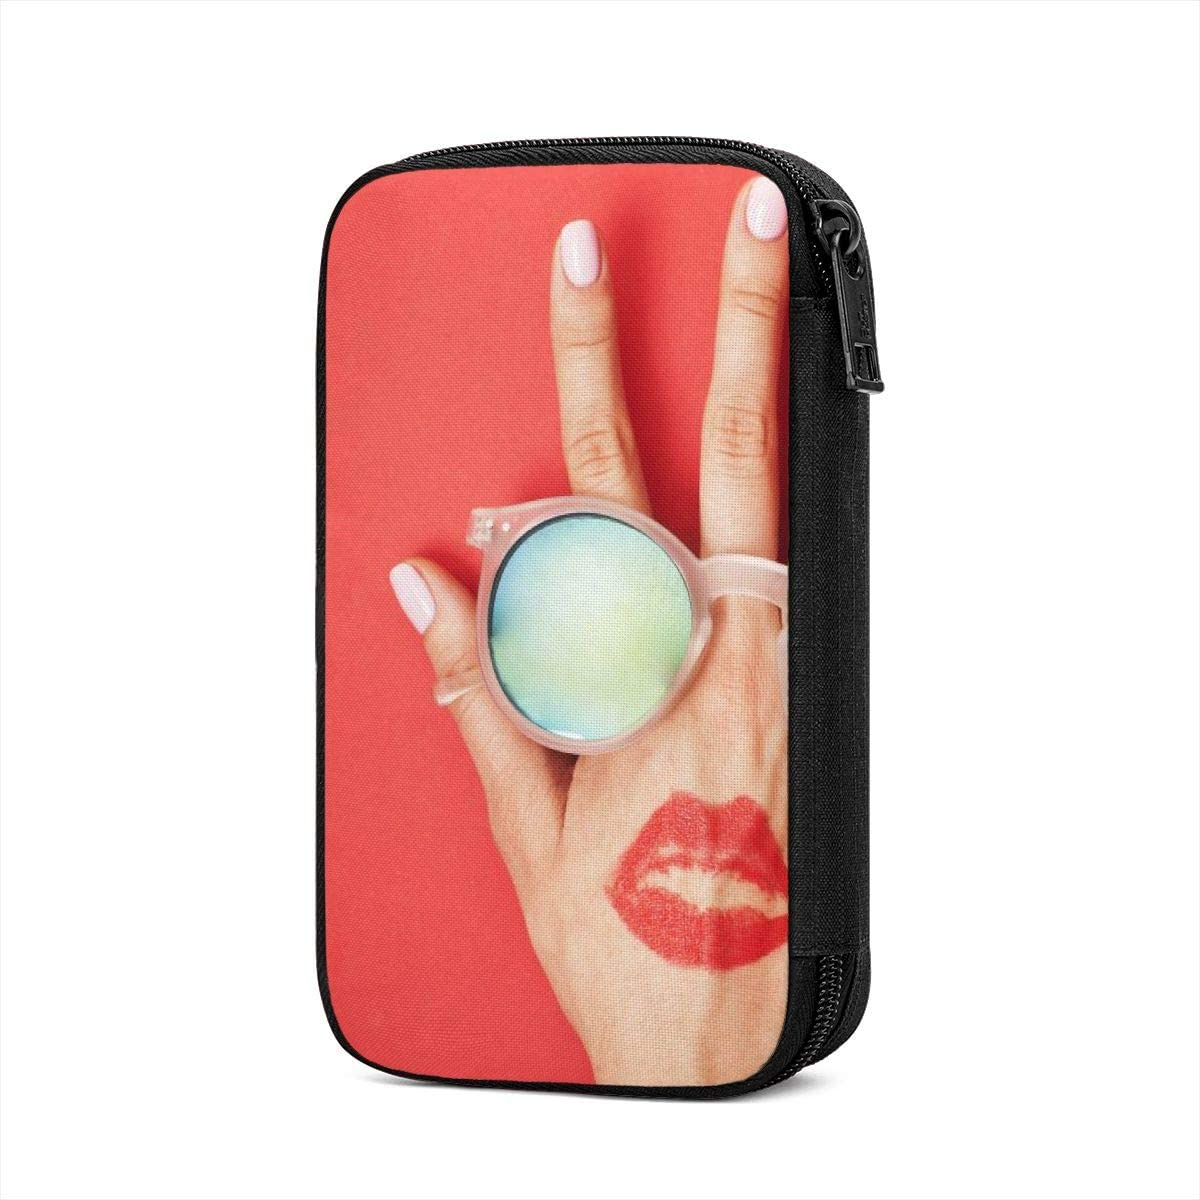 Osvbs Red Lips and Sunglasses On Hand Large discharge sale Electronic Back of The Attention brand